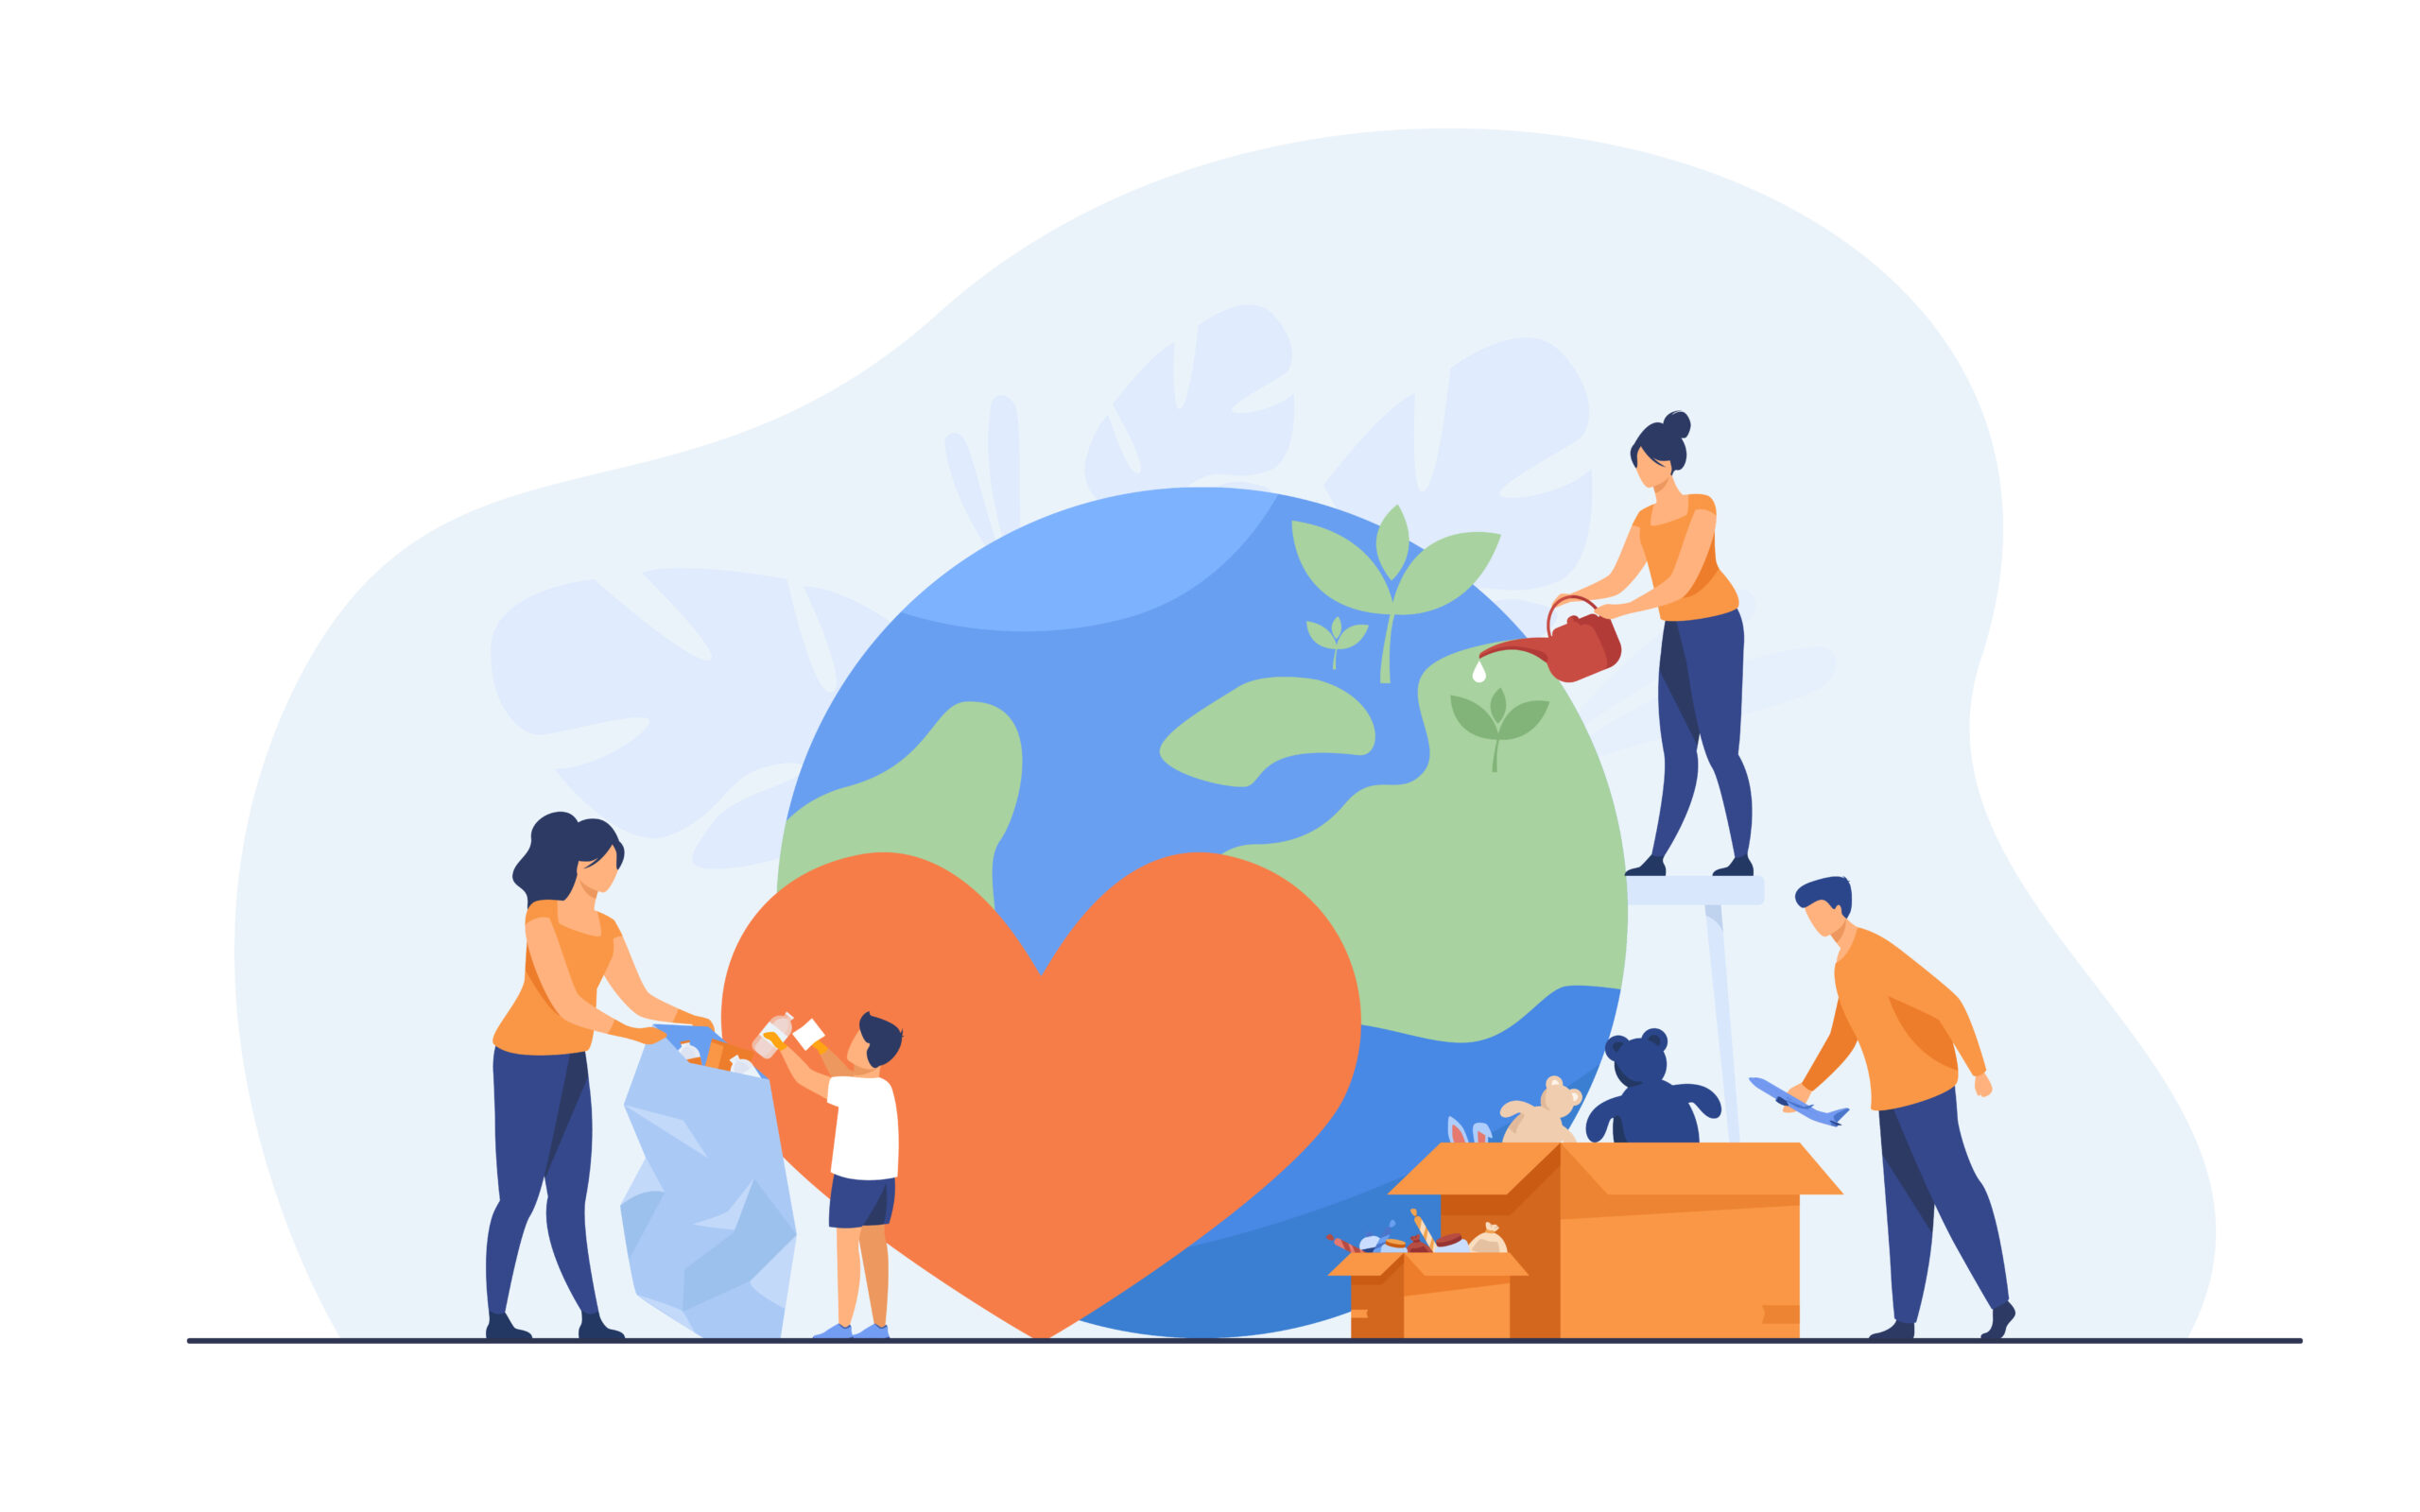 illustration of a social team helping charity and sharing hope